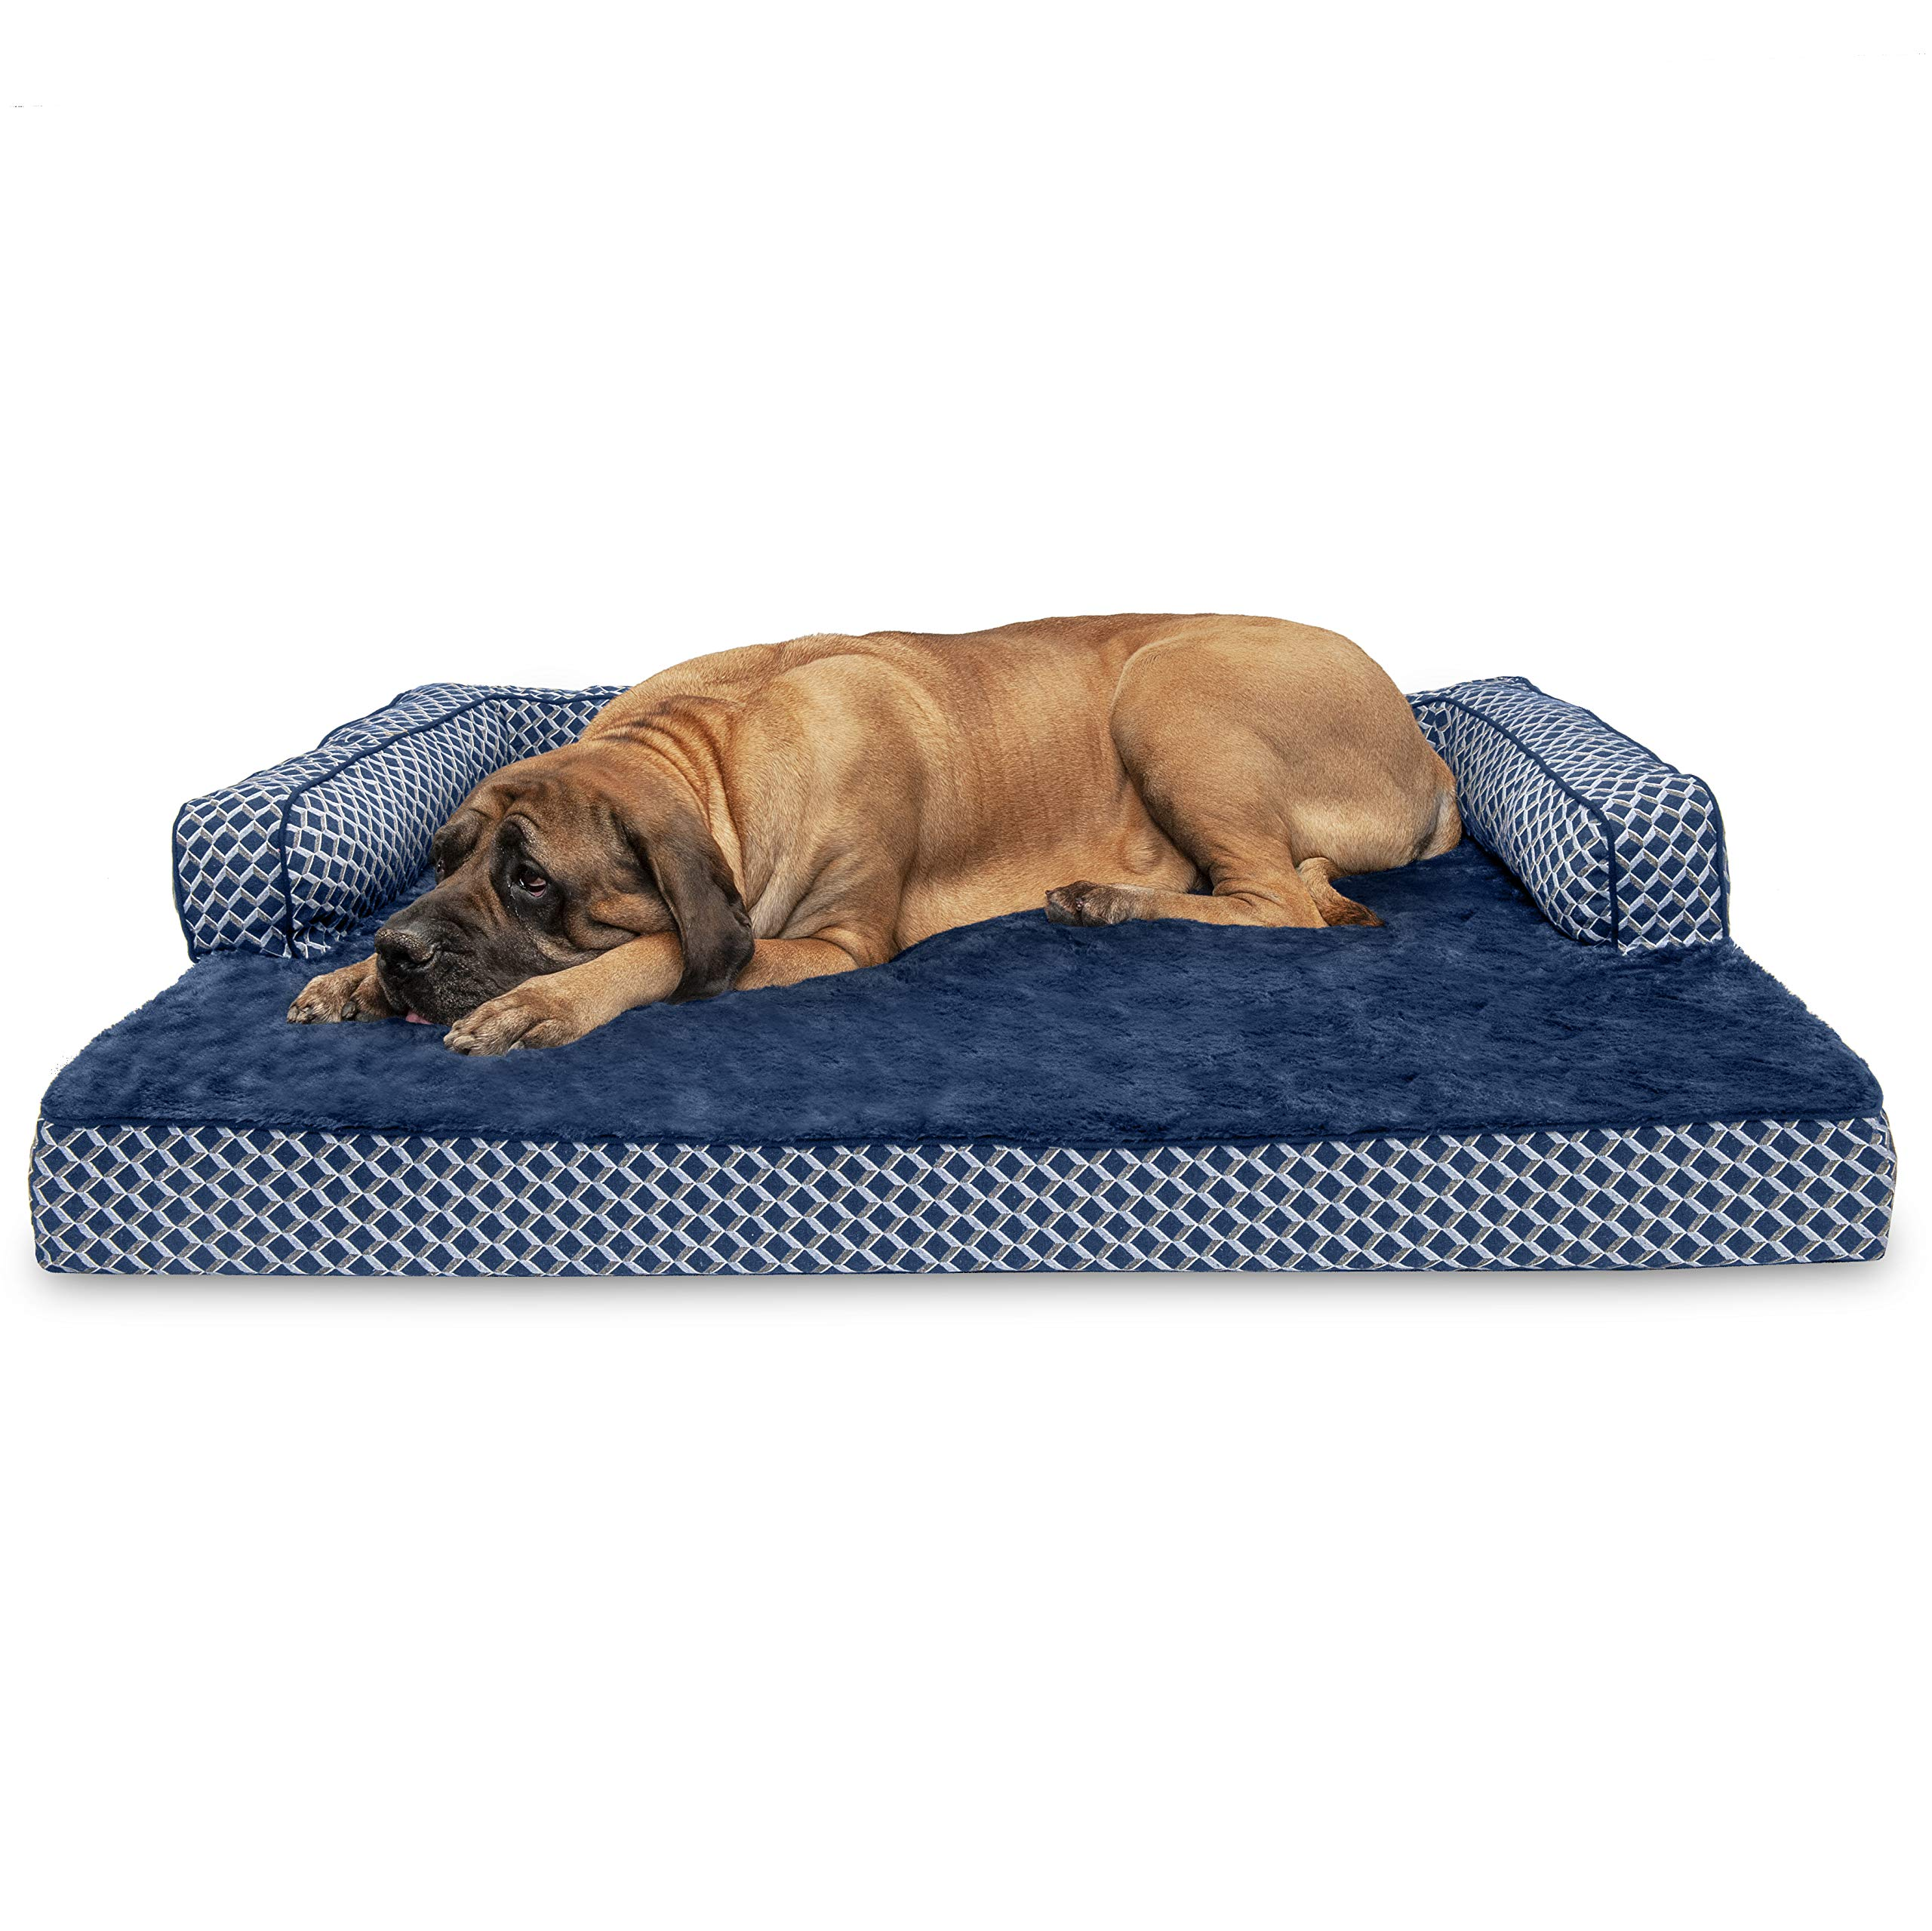 Furhaven Pet Dog Bed | Orthopedic Plush Faux Fur & Décor Comfy Couch Sofa-Style Living Room Couch Pet Bed for Dogs & Cats, Diamond Blue, Jumbo Plus